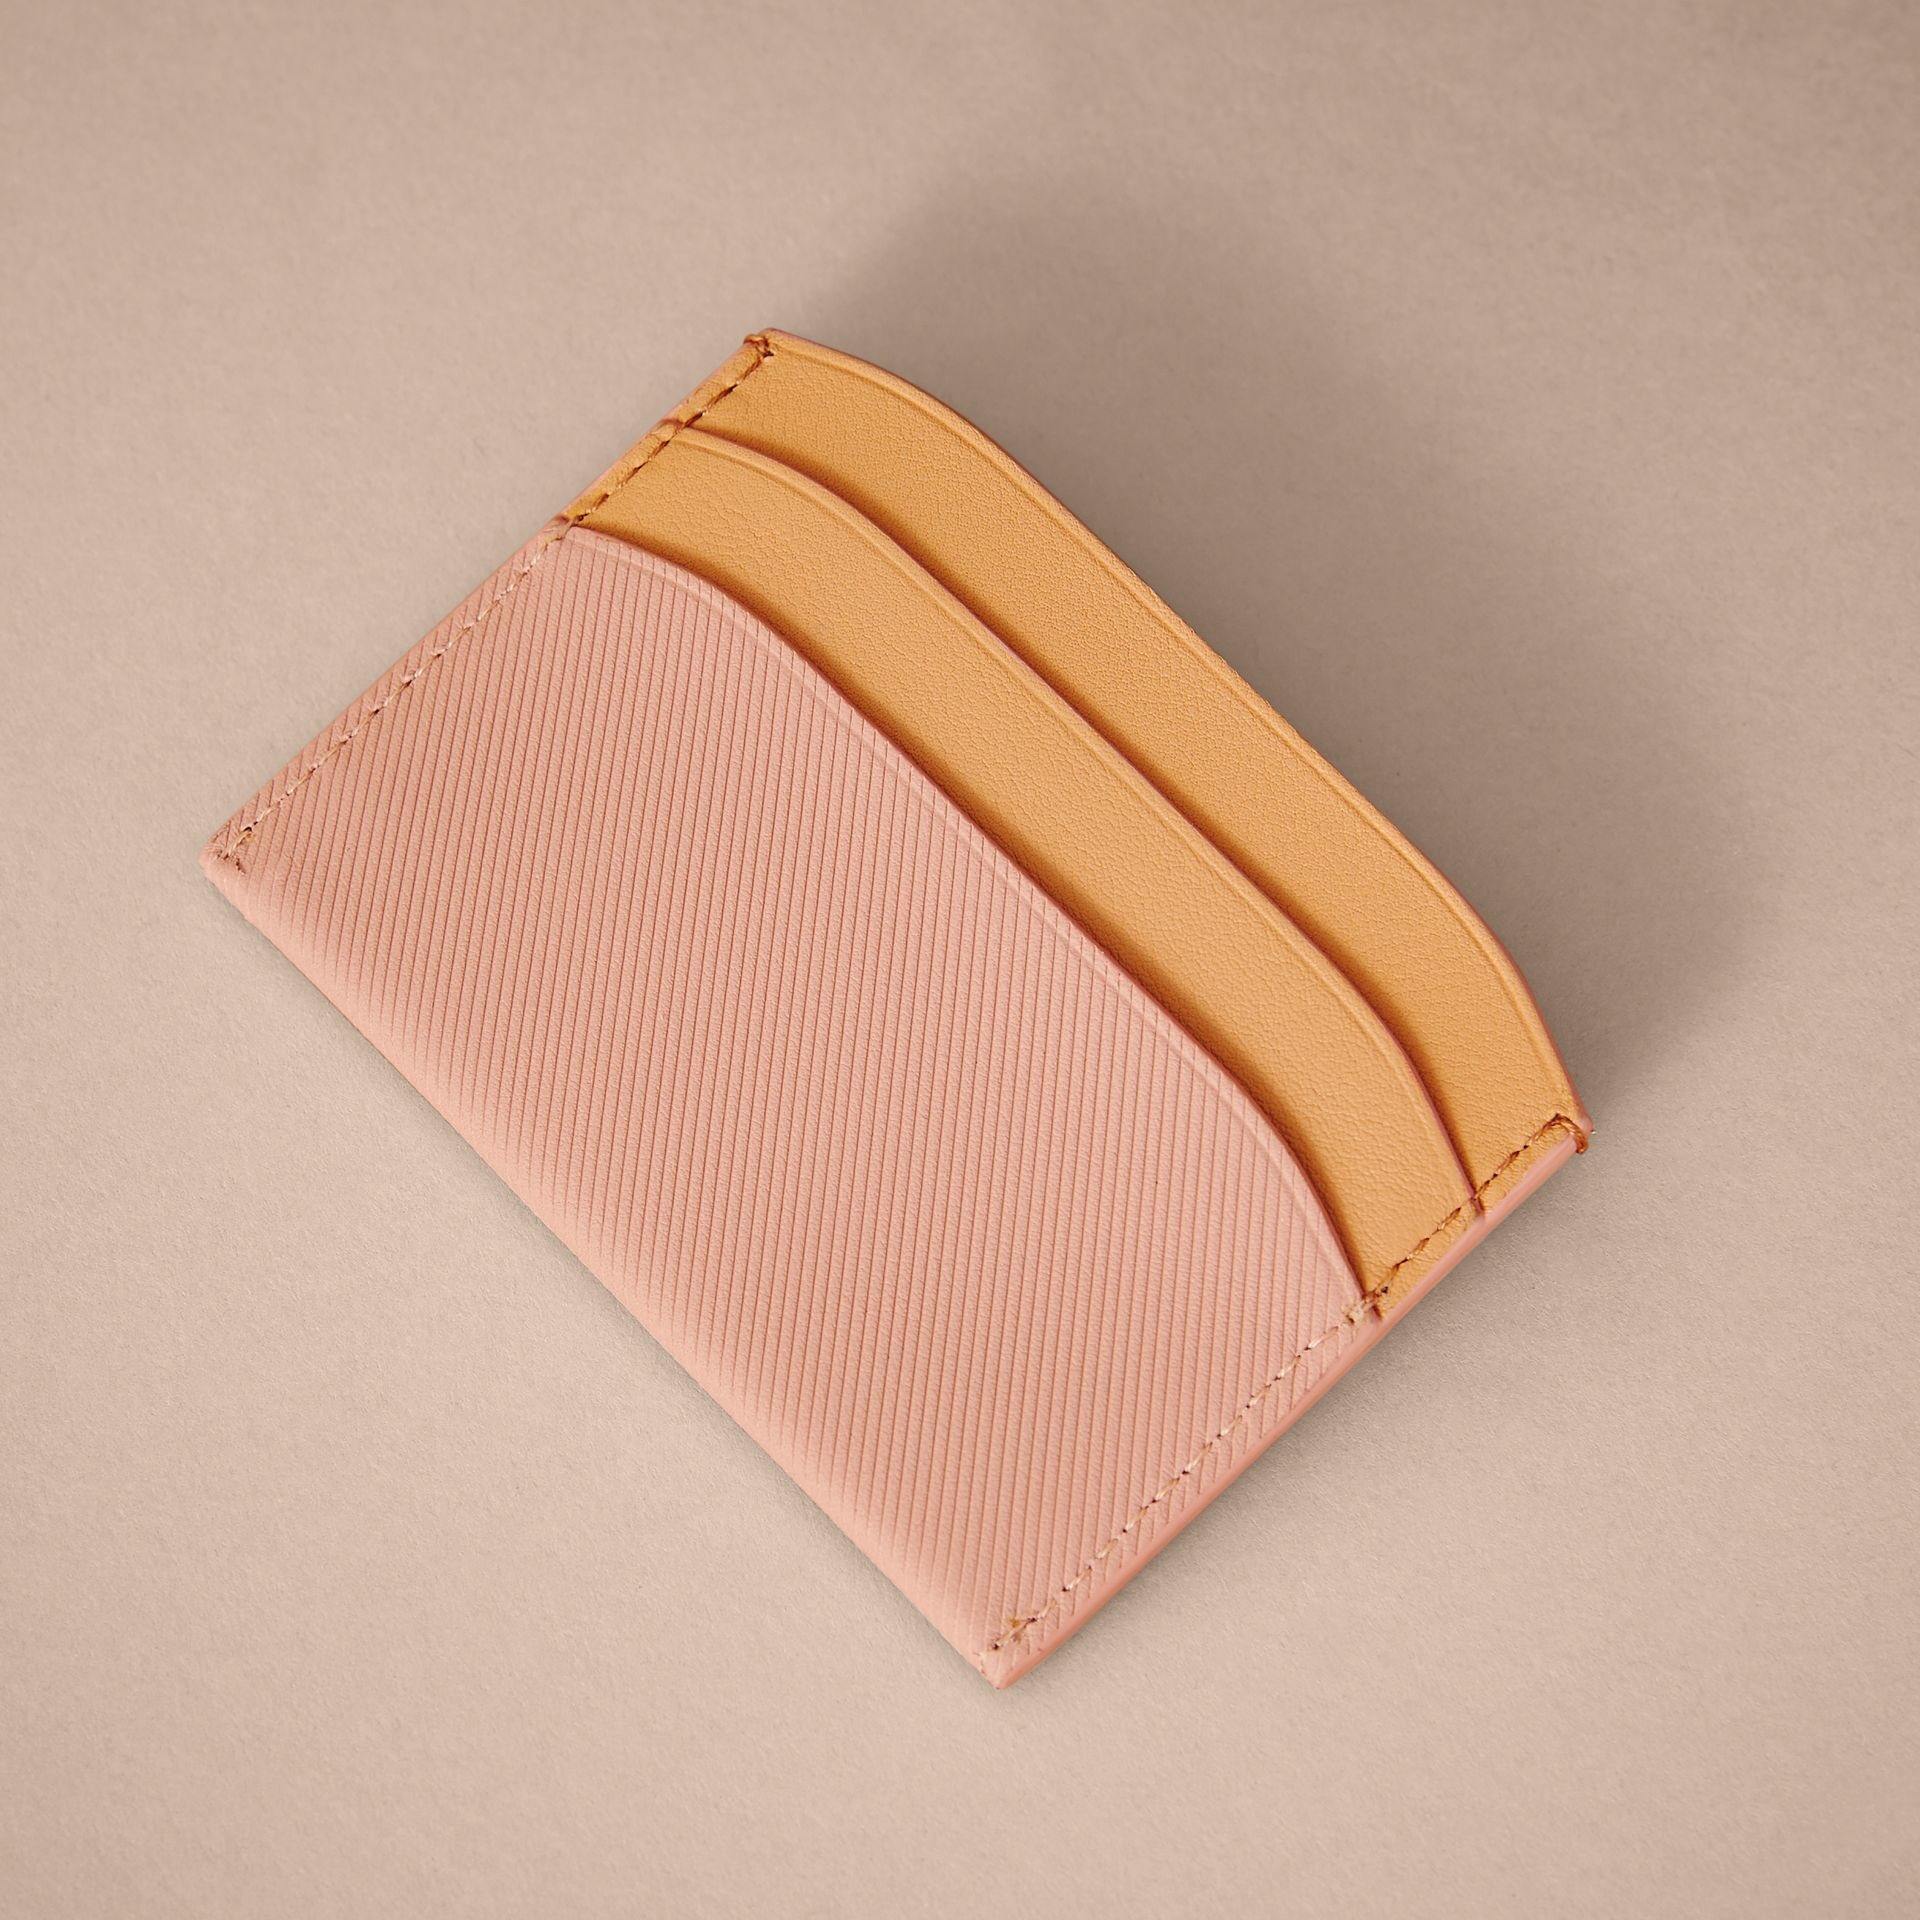 Two-tone Trench Leather Card Case in Ash Rose/pl Clemn - Women | Burberry Hong Kong - gallery image 3